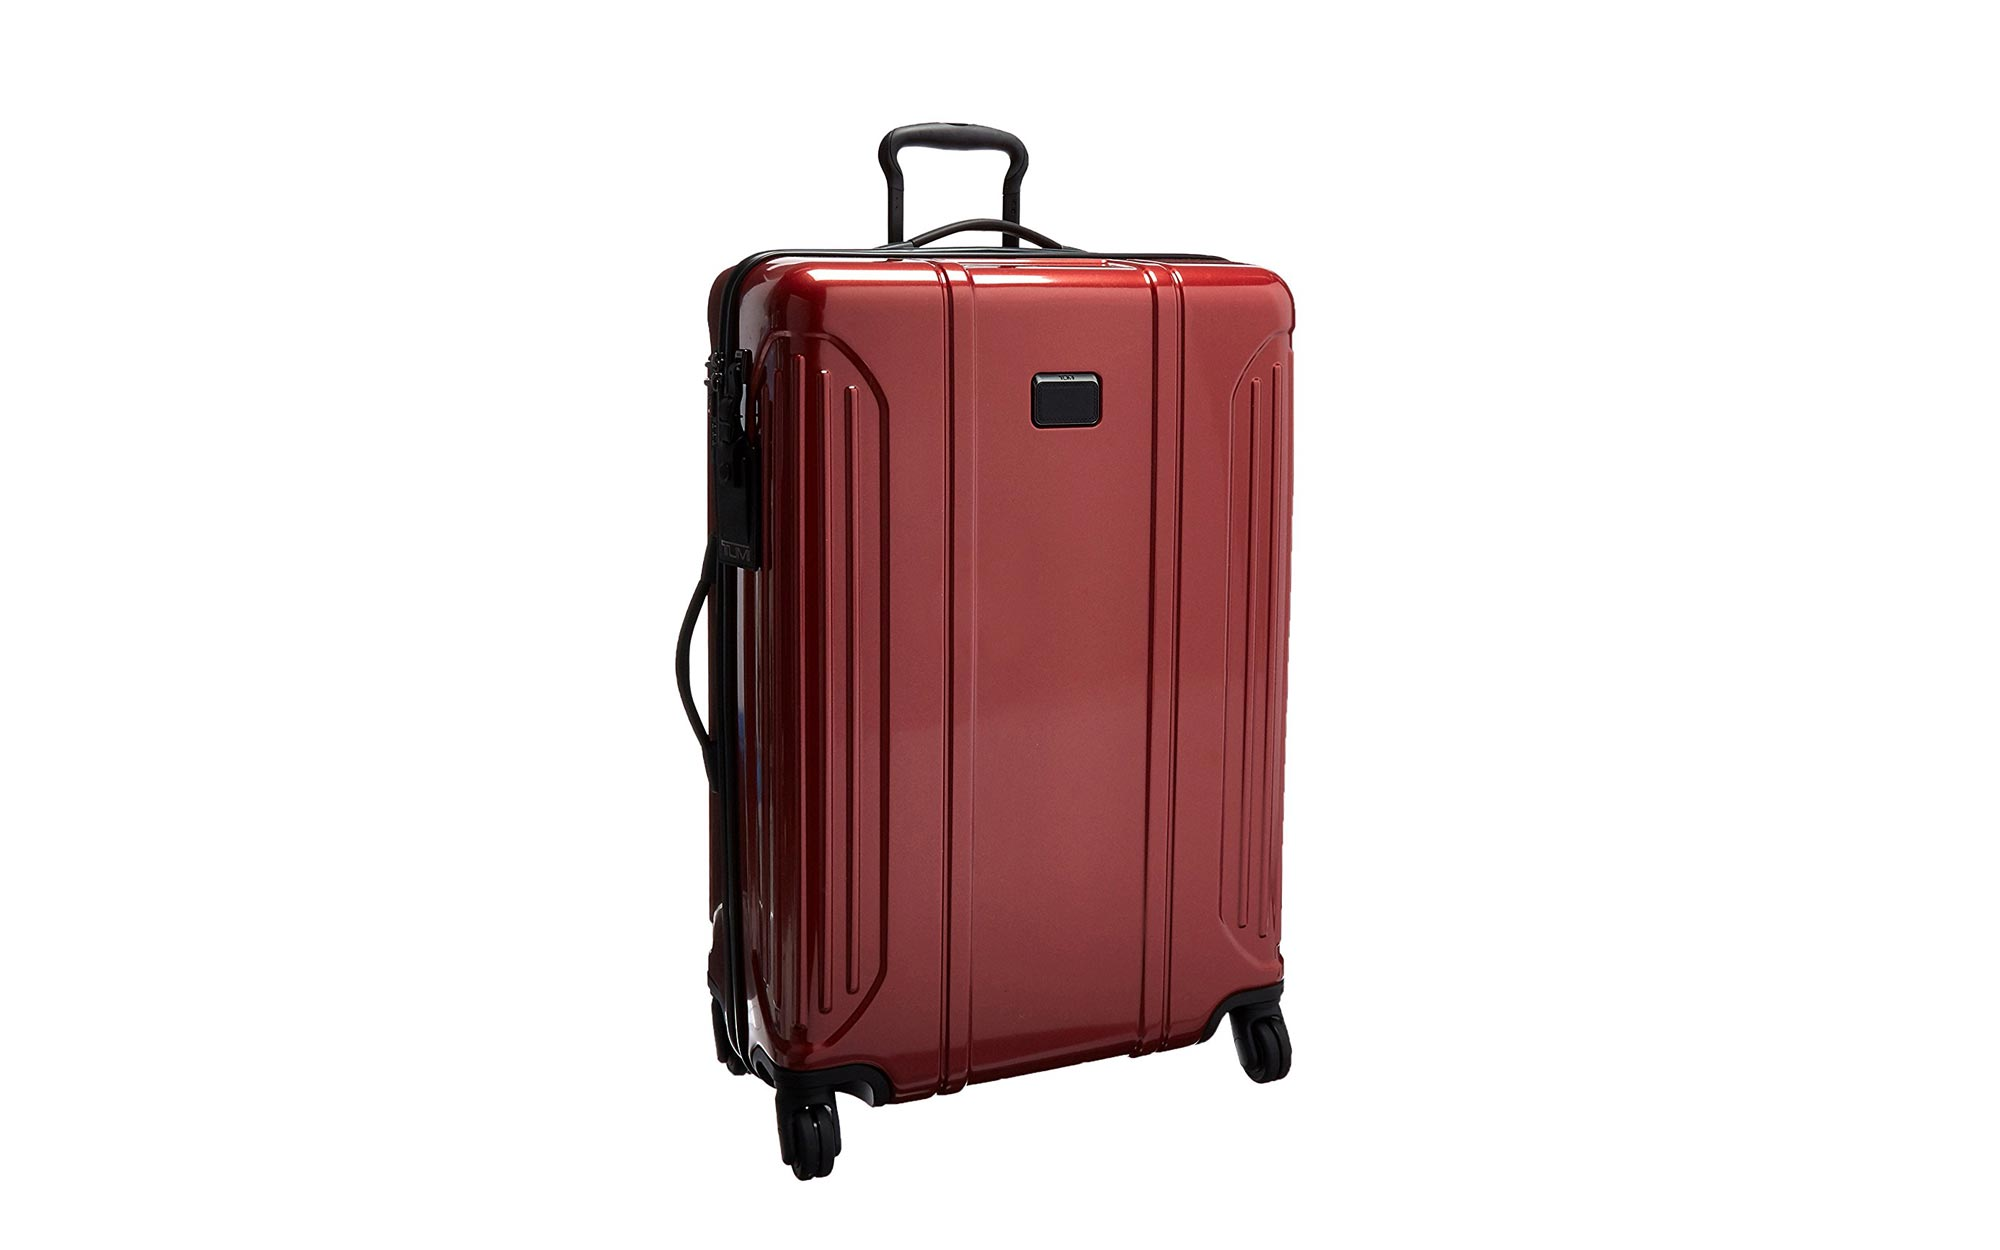 Save 50% on TUMI Luggage for Cyber Monday